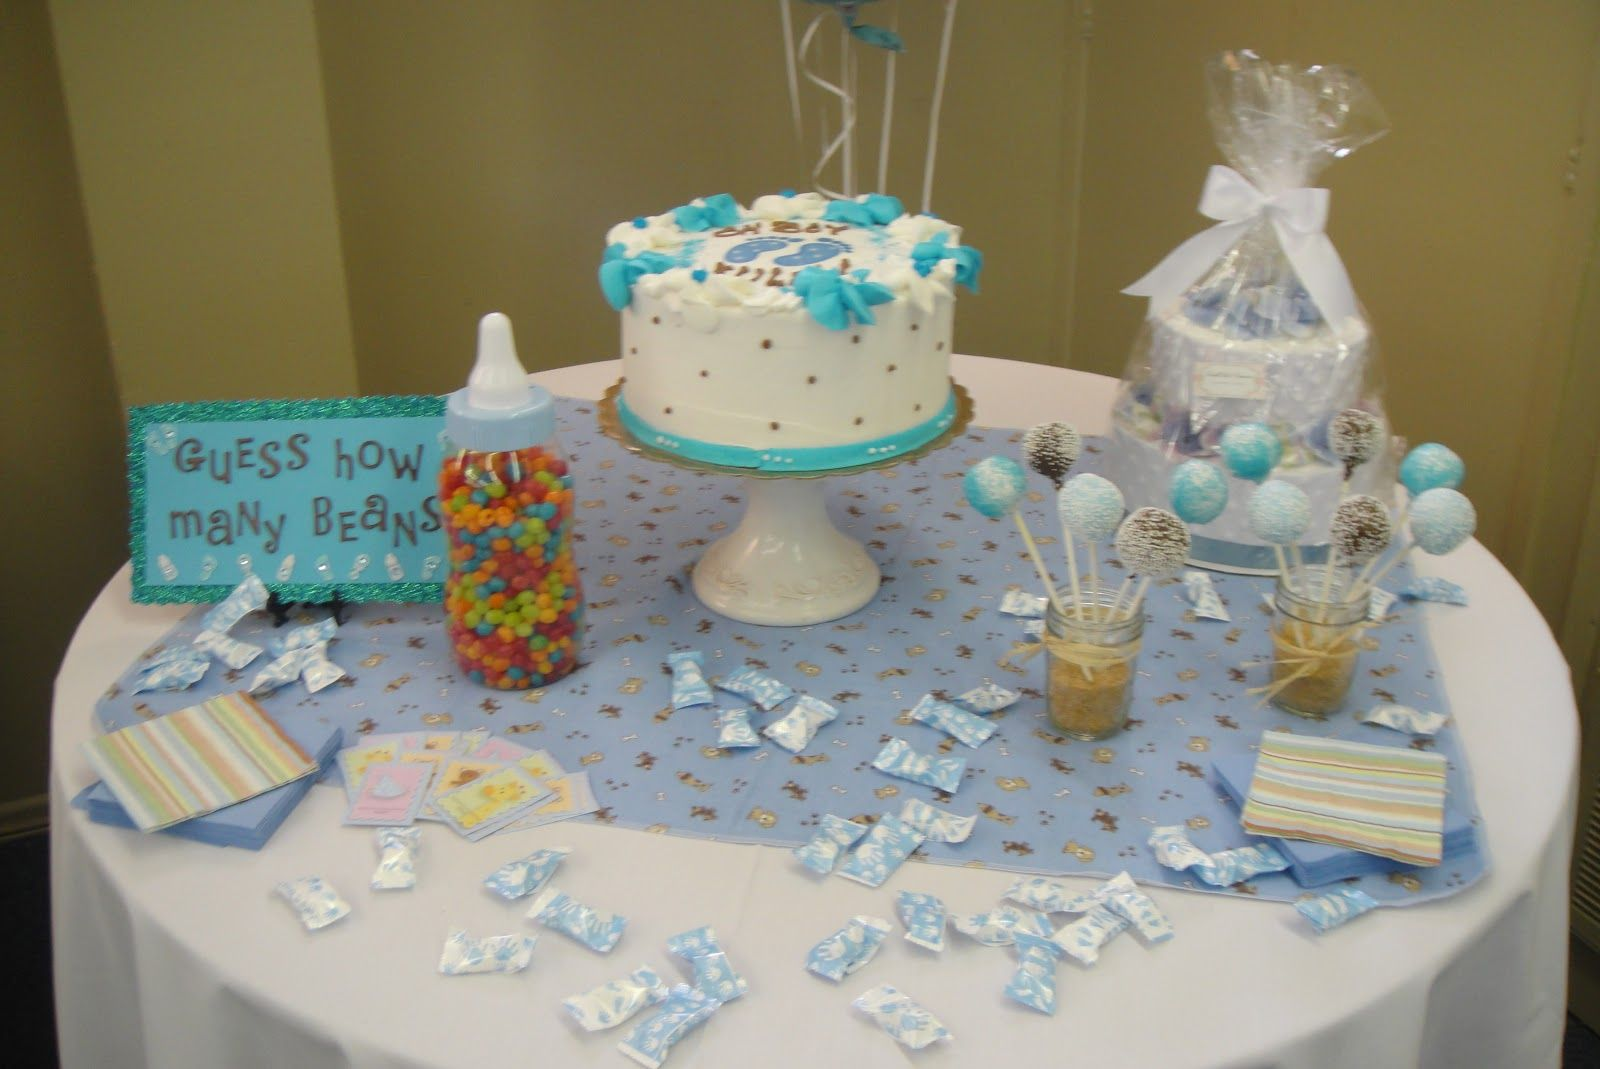 Baby shower table decorations health and fitness for Baby shower cake decoration ideas